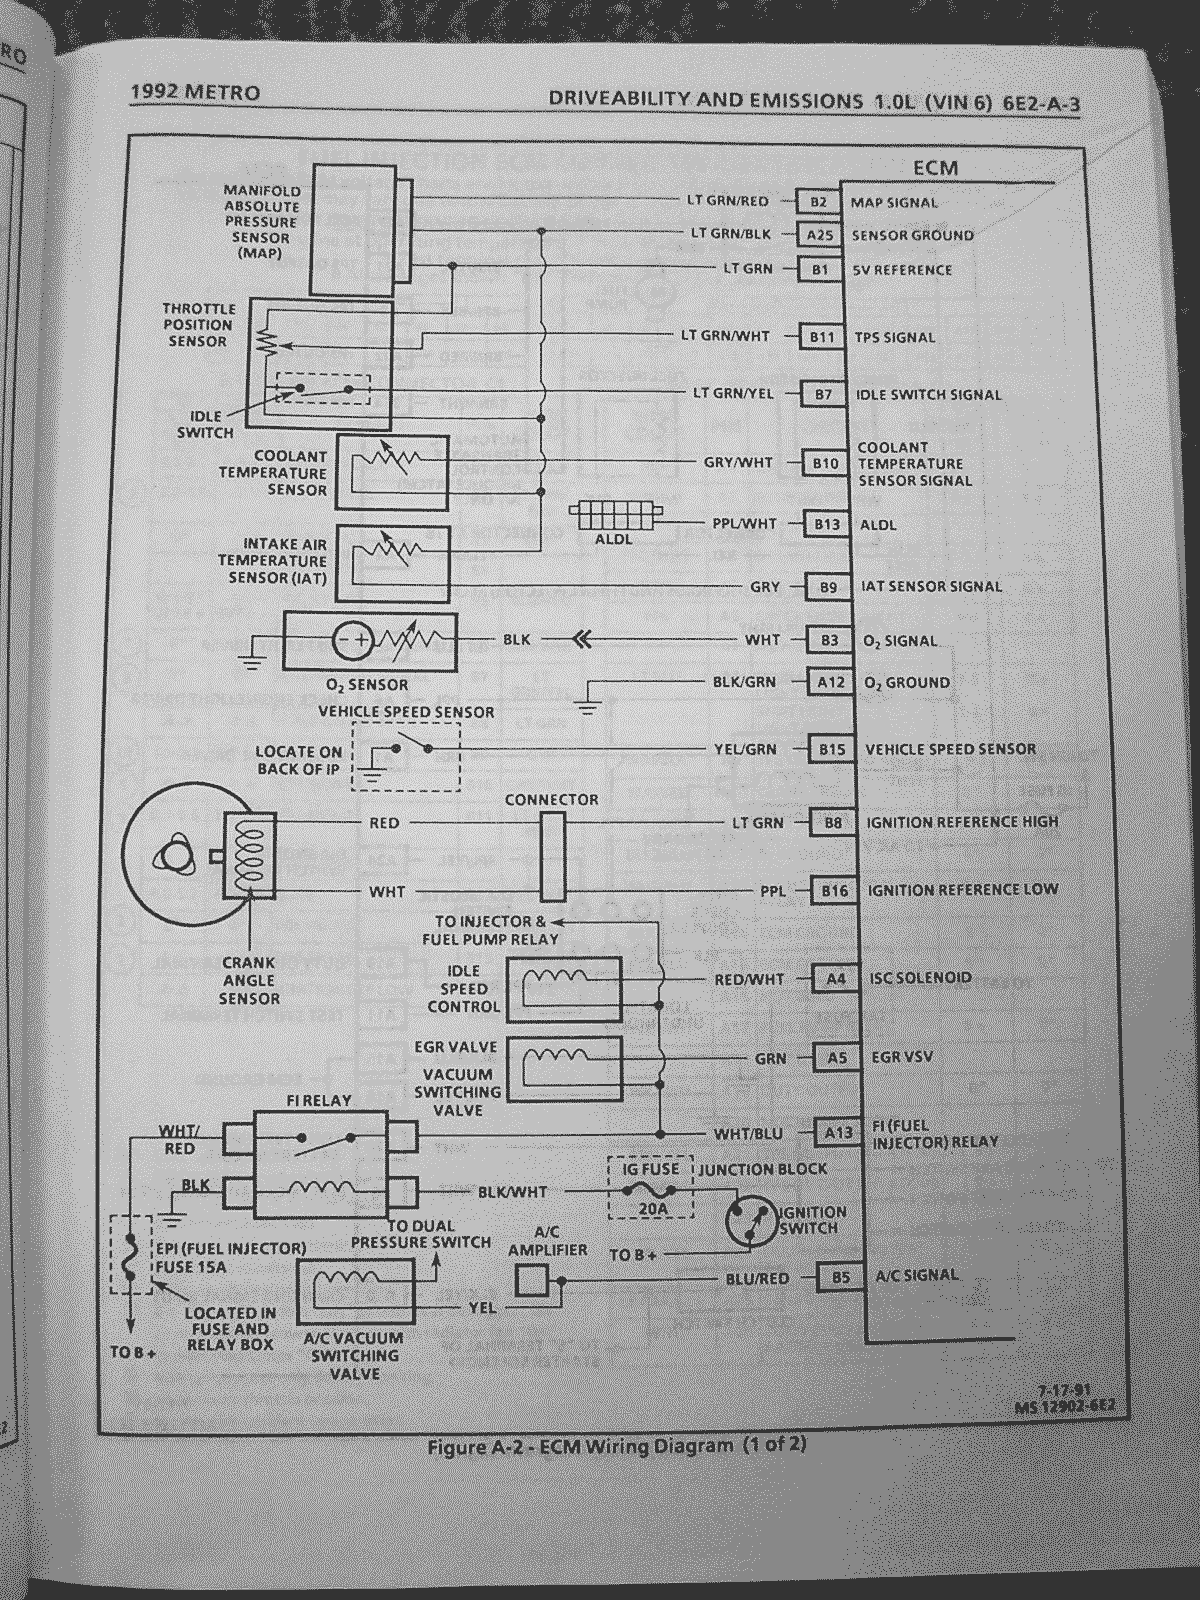 6e2 a 3 swift wiring diagram swift wiring diagram \u2022 free wiring diagrams wiring diagram for 1994 geo prizm at gsmportal.co